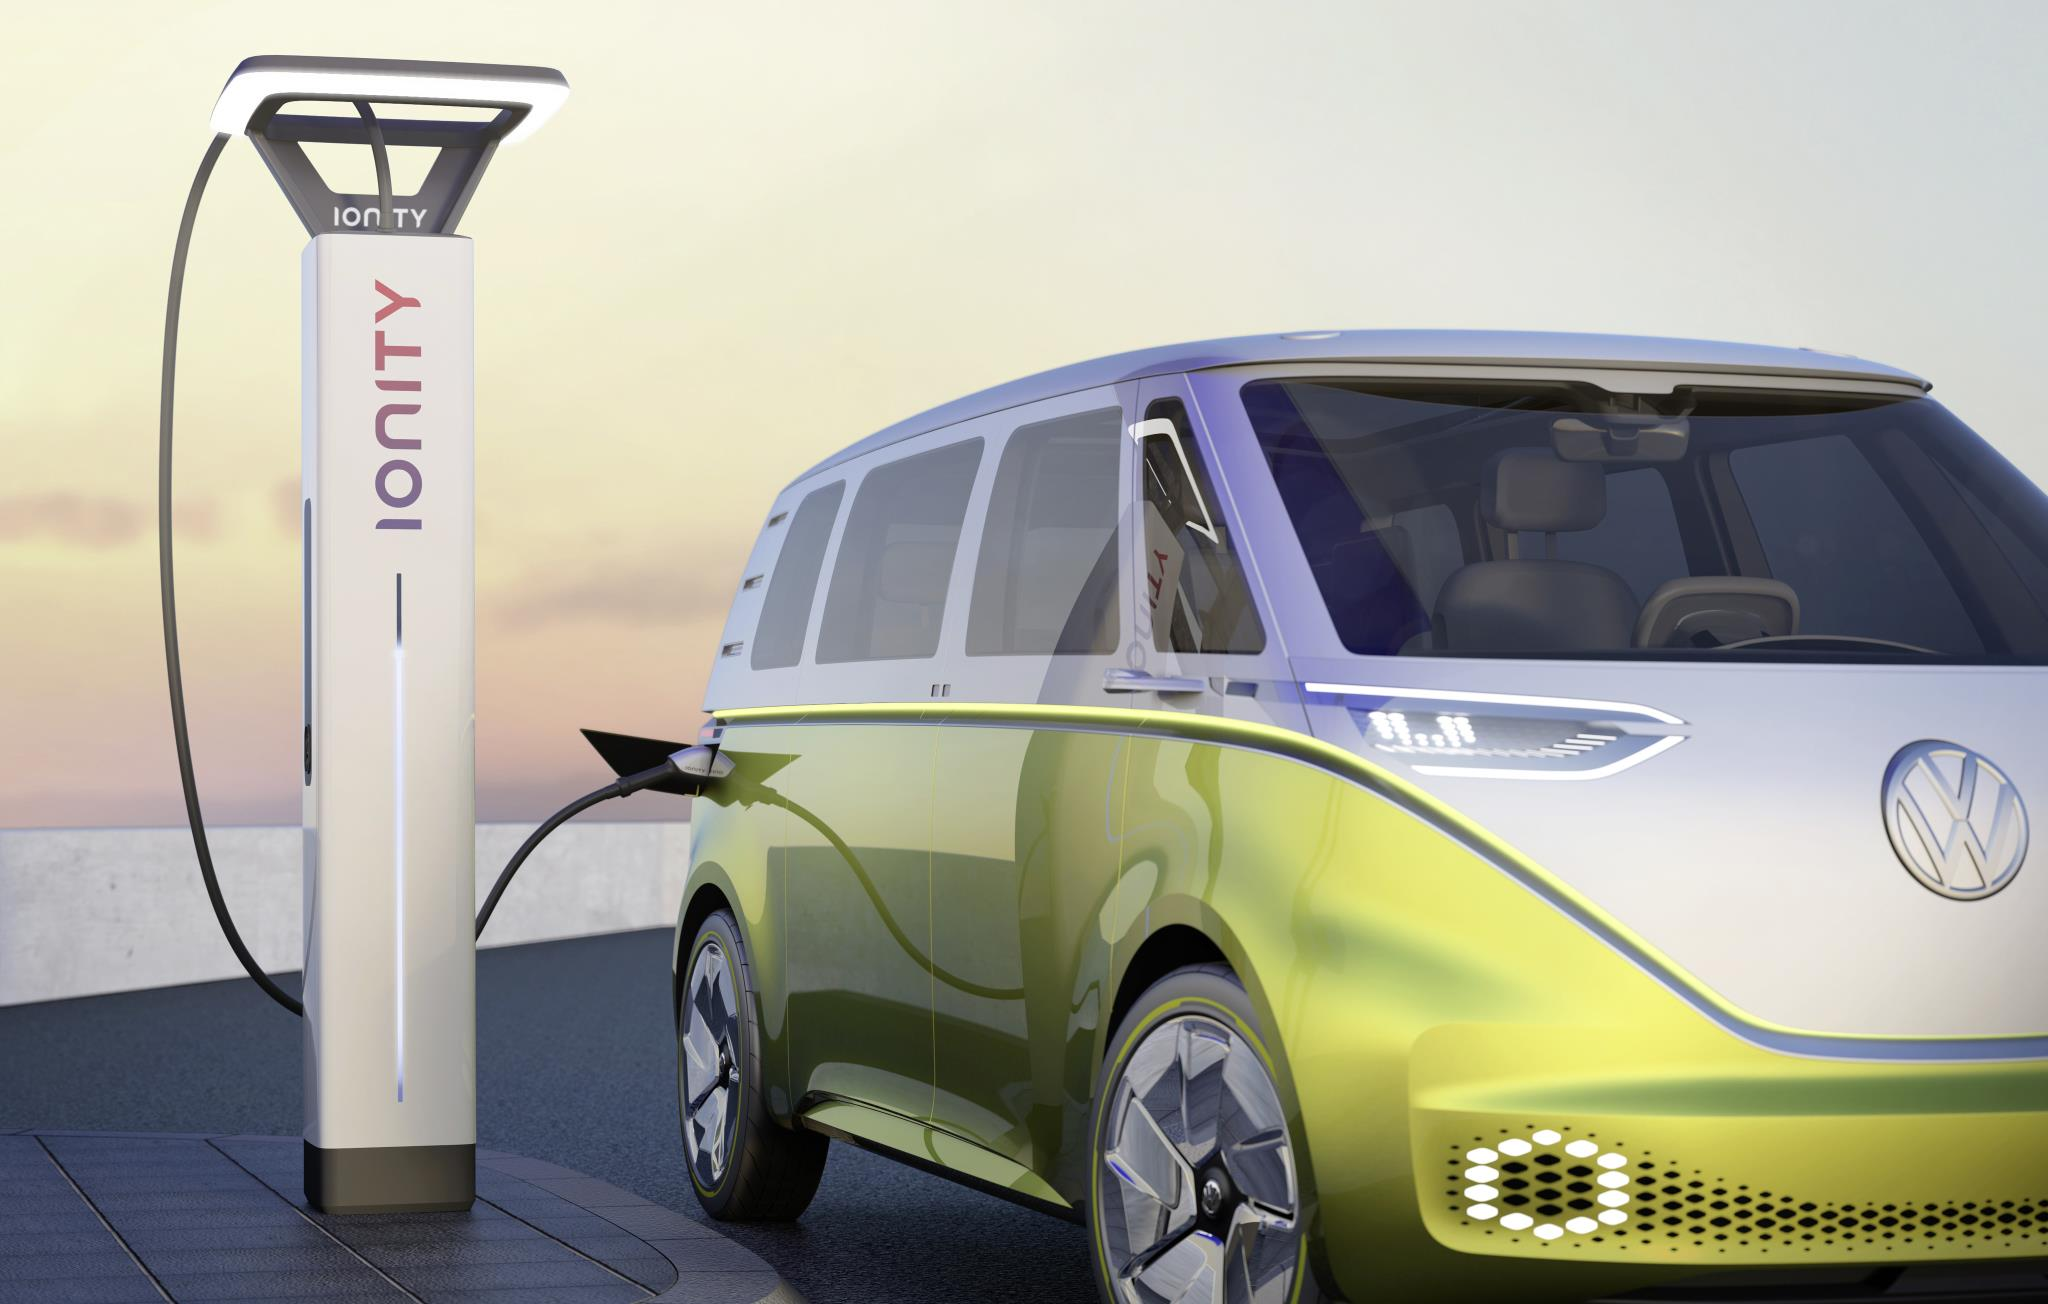 Vw Online Claims >> Volkswagen launches Electric for All campaign, production of Volkswagen ID. electric car to ...